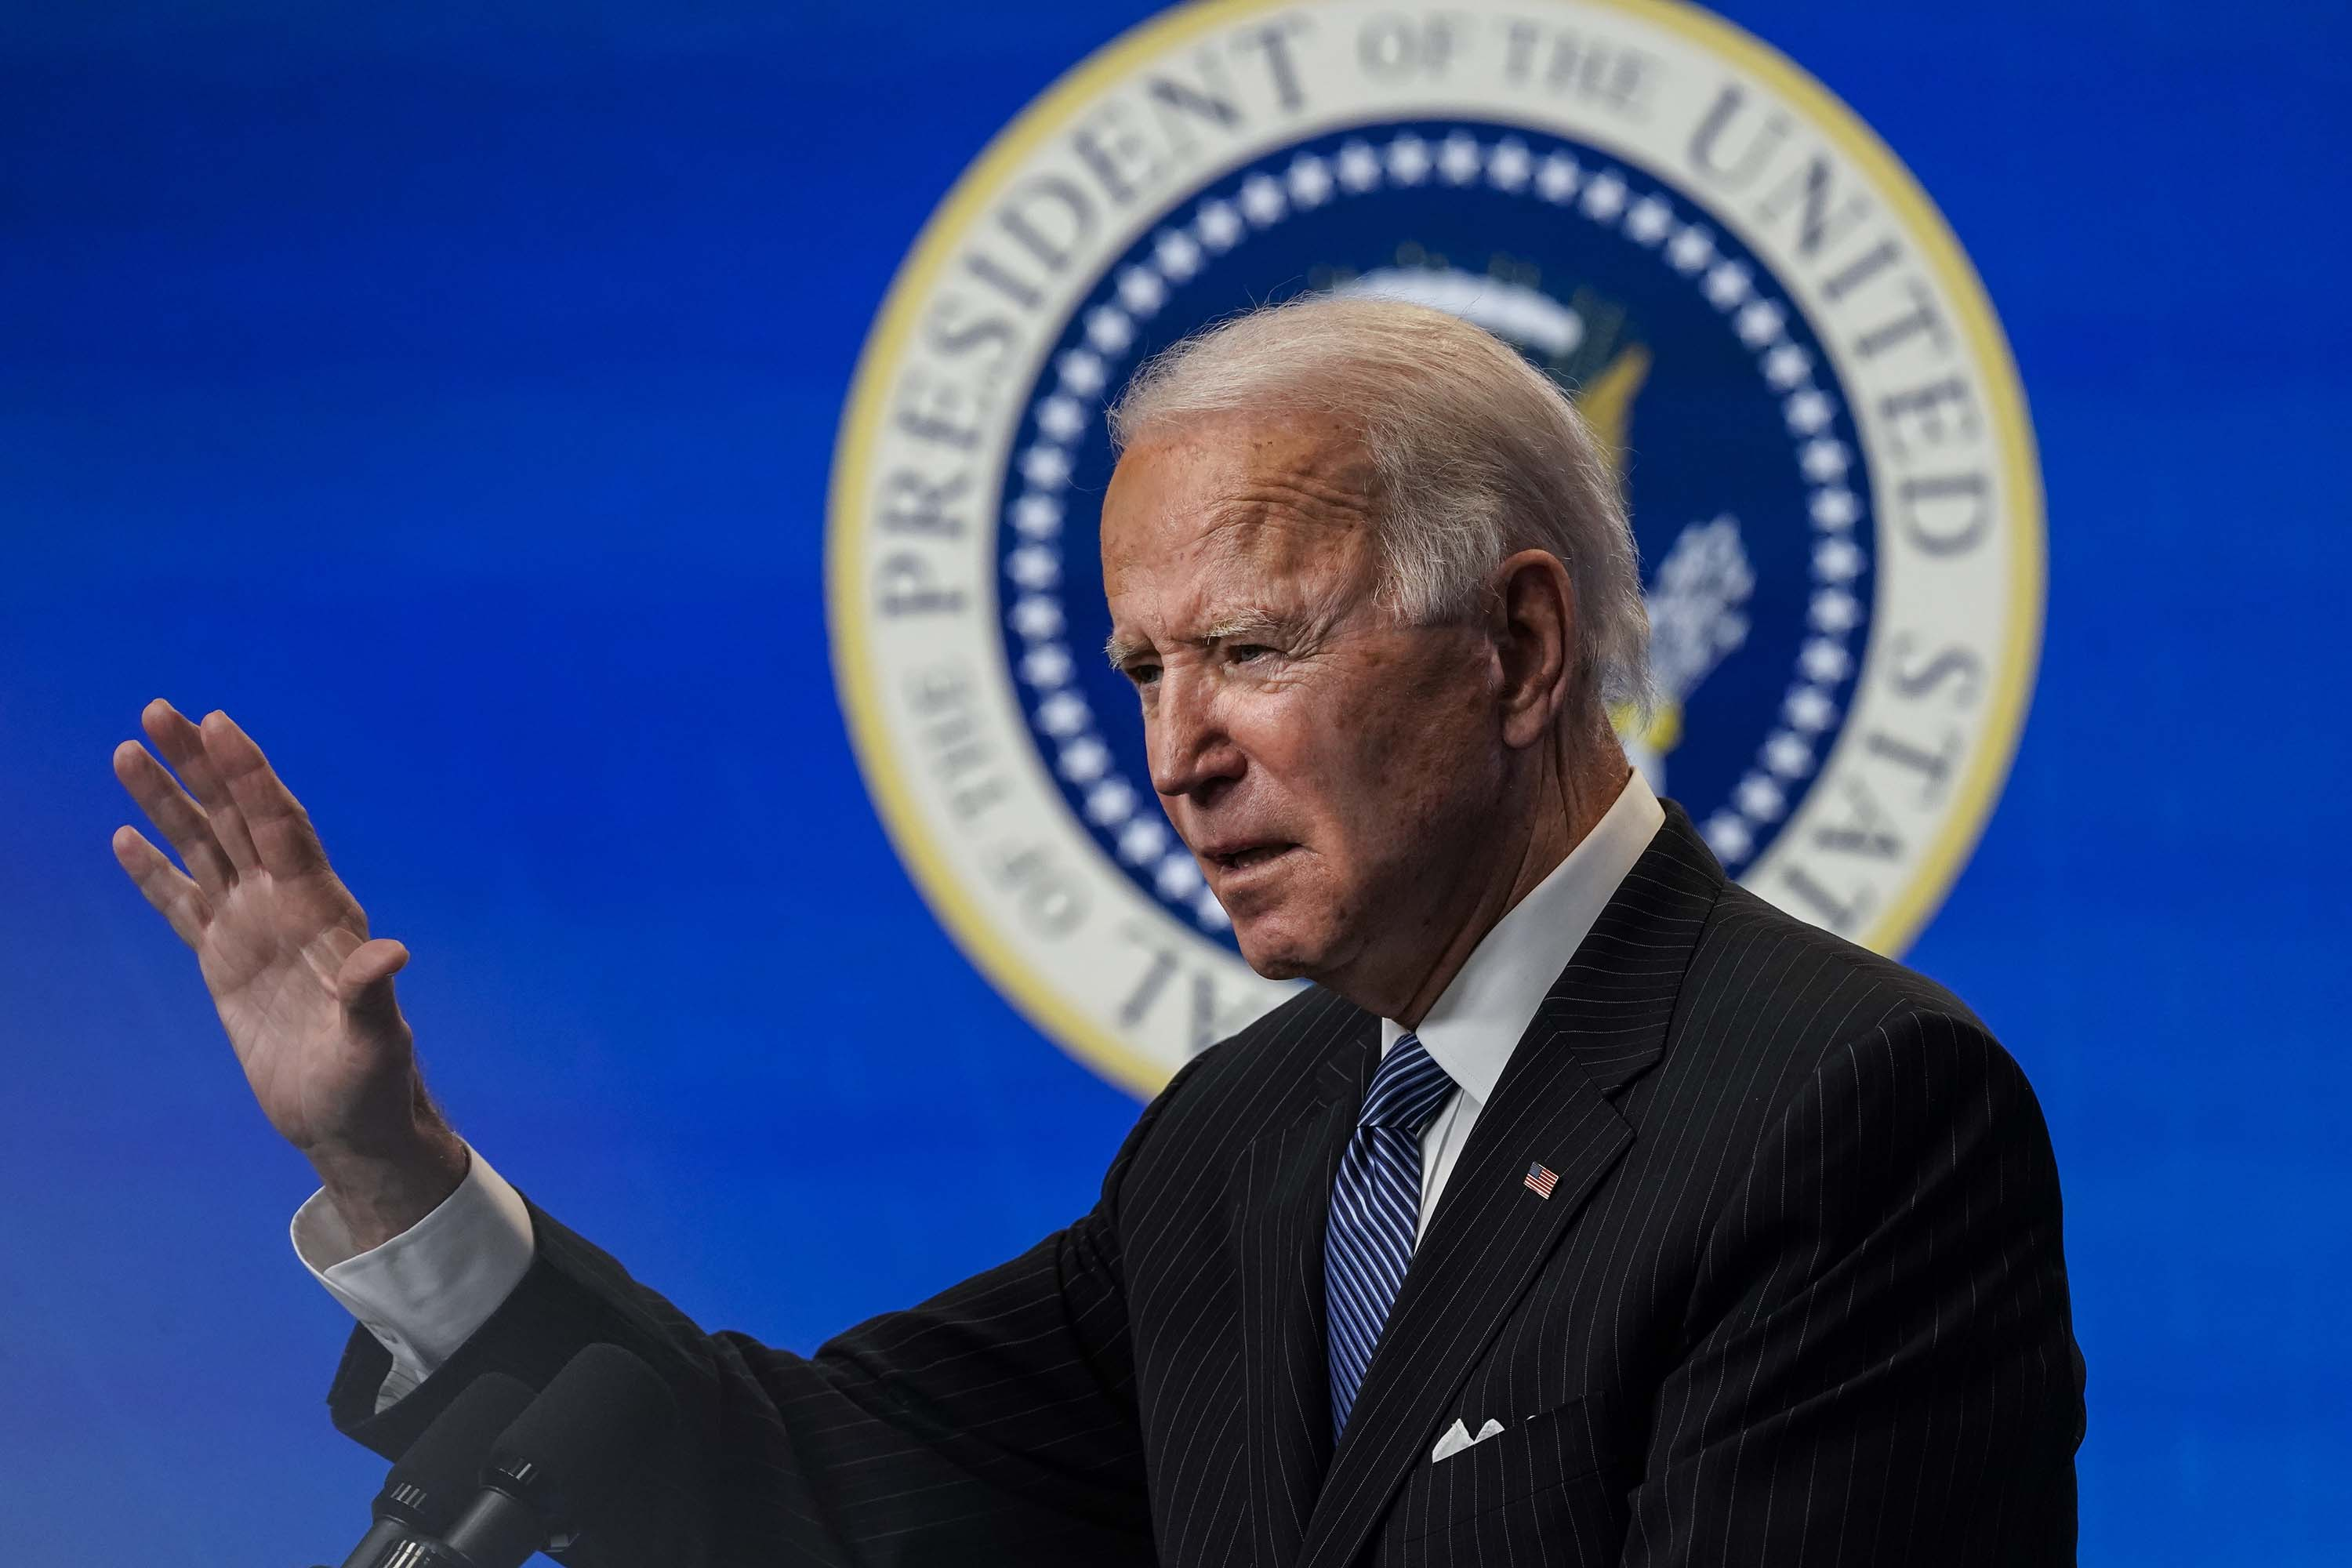 Judge temporarily blocks Biden's plan to halt deportations